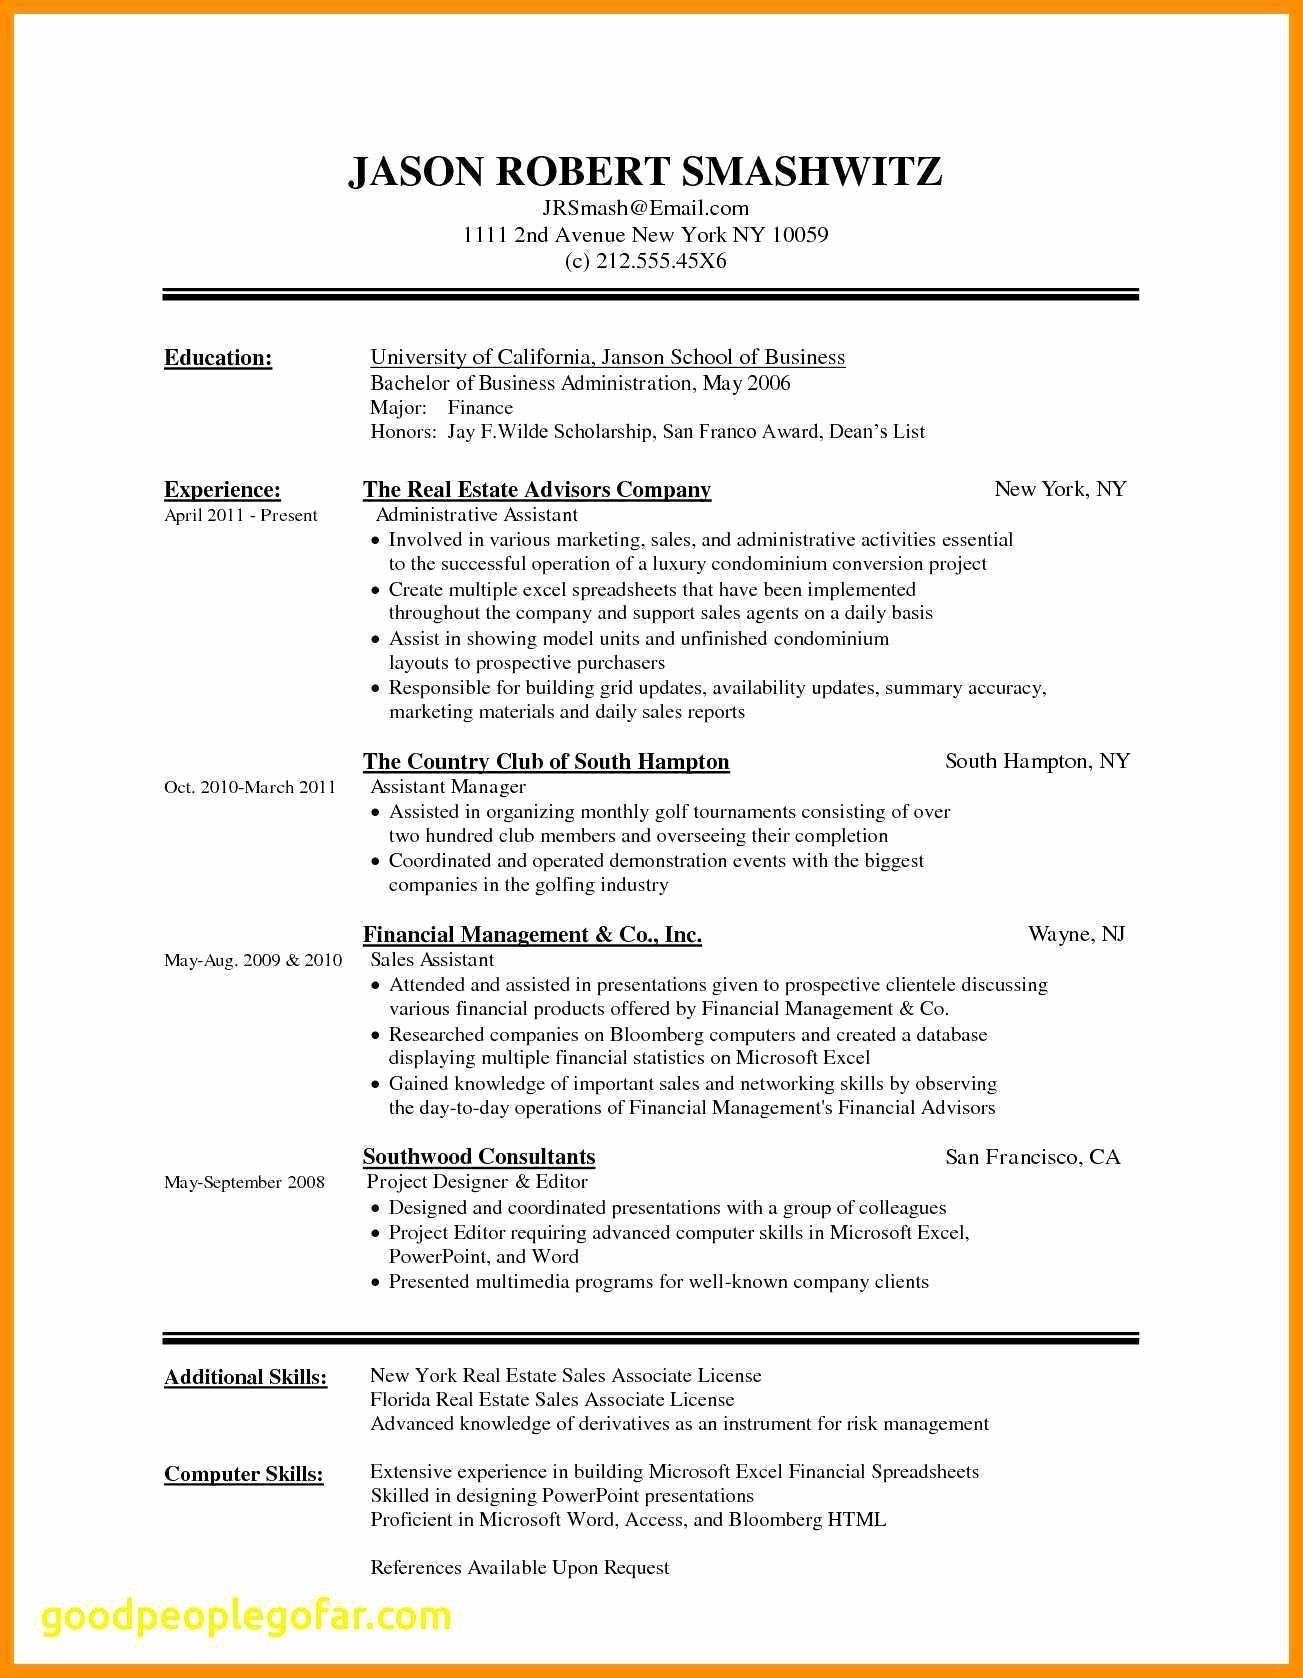 film resume template word example-Resume Template Lovely New Pr Resume Template Elegant Dictionary Template 0d Archives Free 8-m